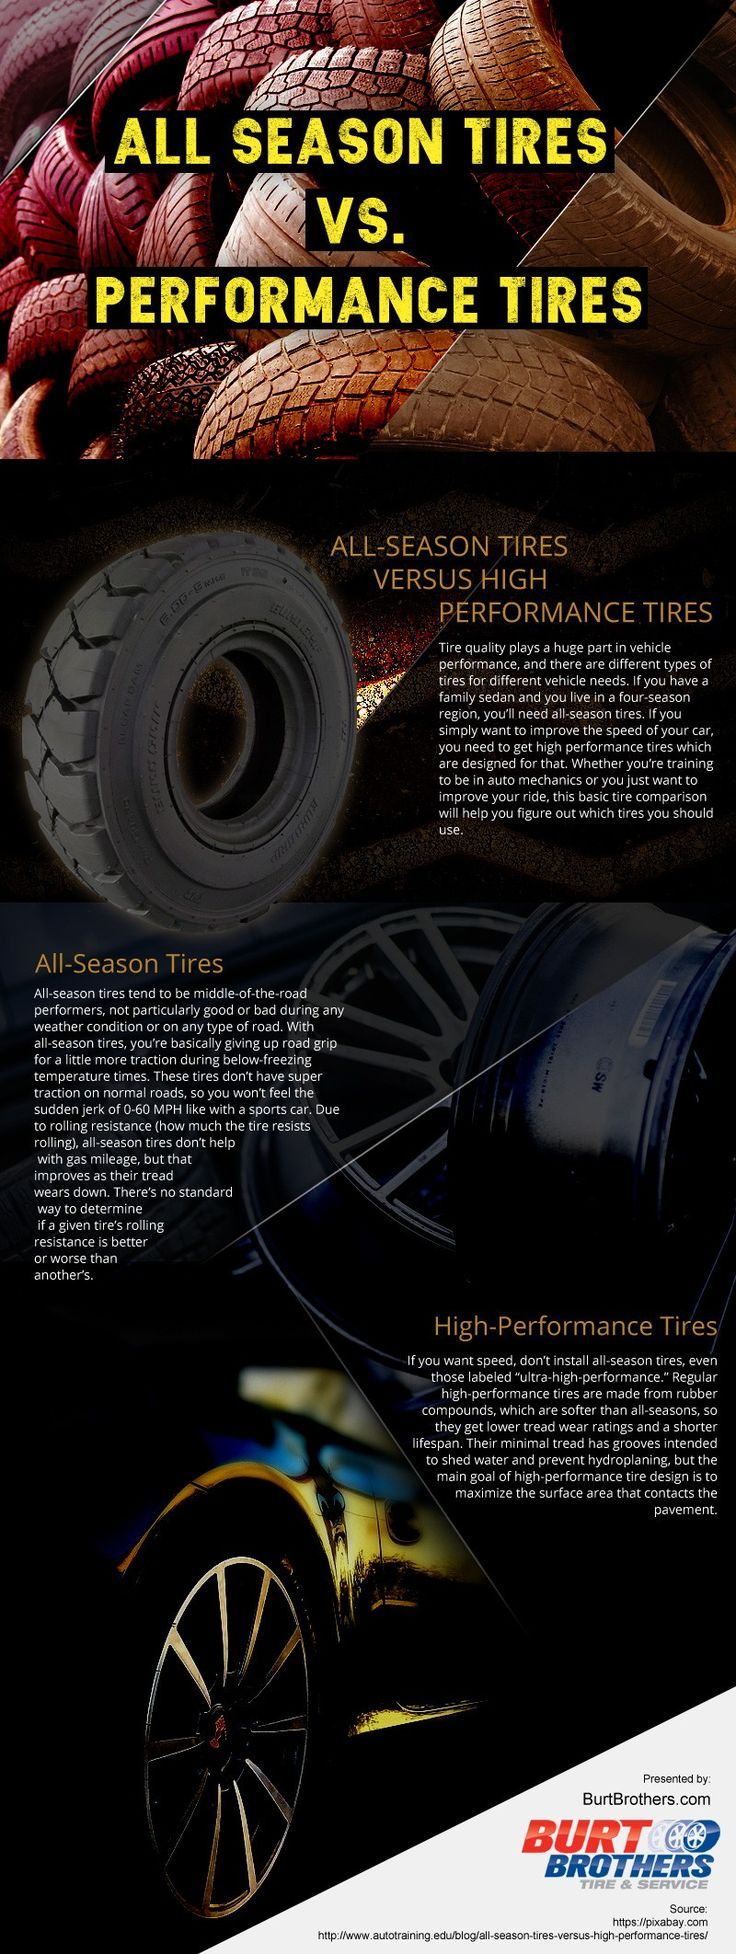 SEO friends Burt Brothers Tire & Service infographic on All Season Tires vs. Performance Tires.